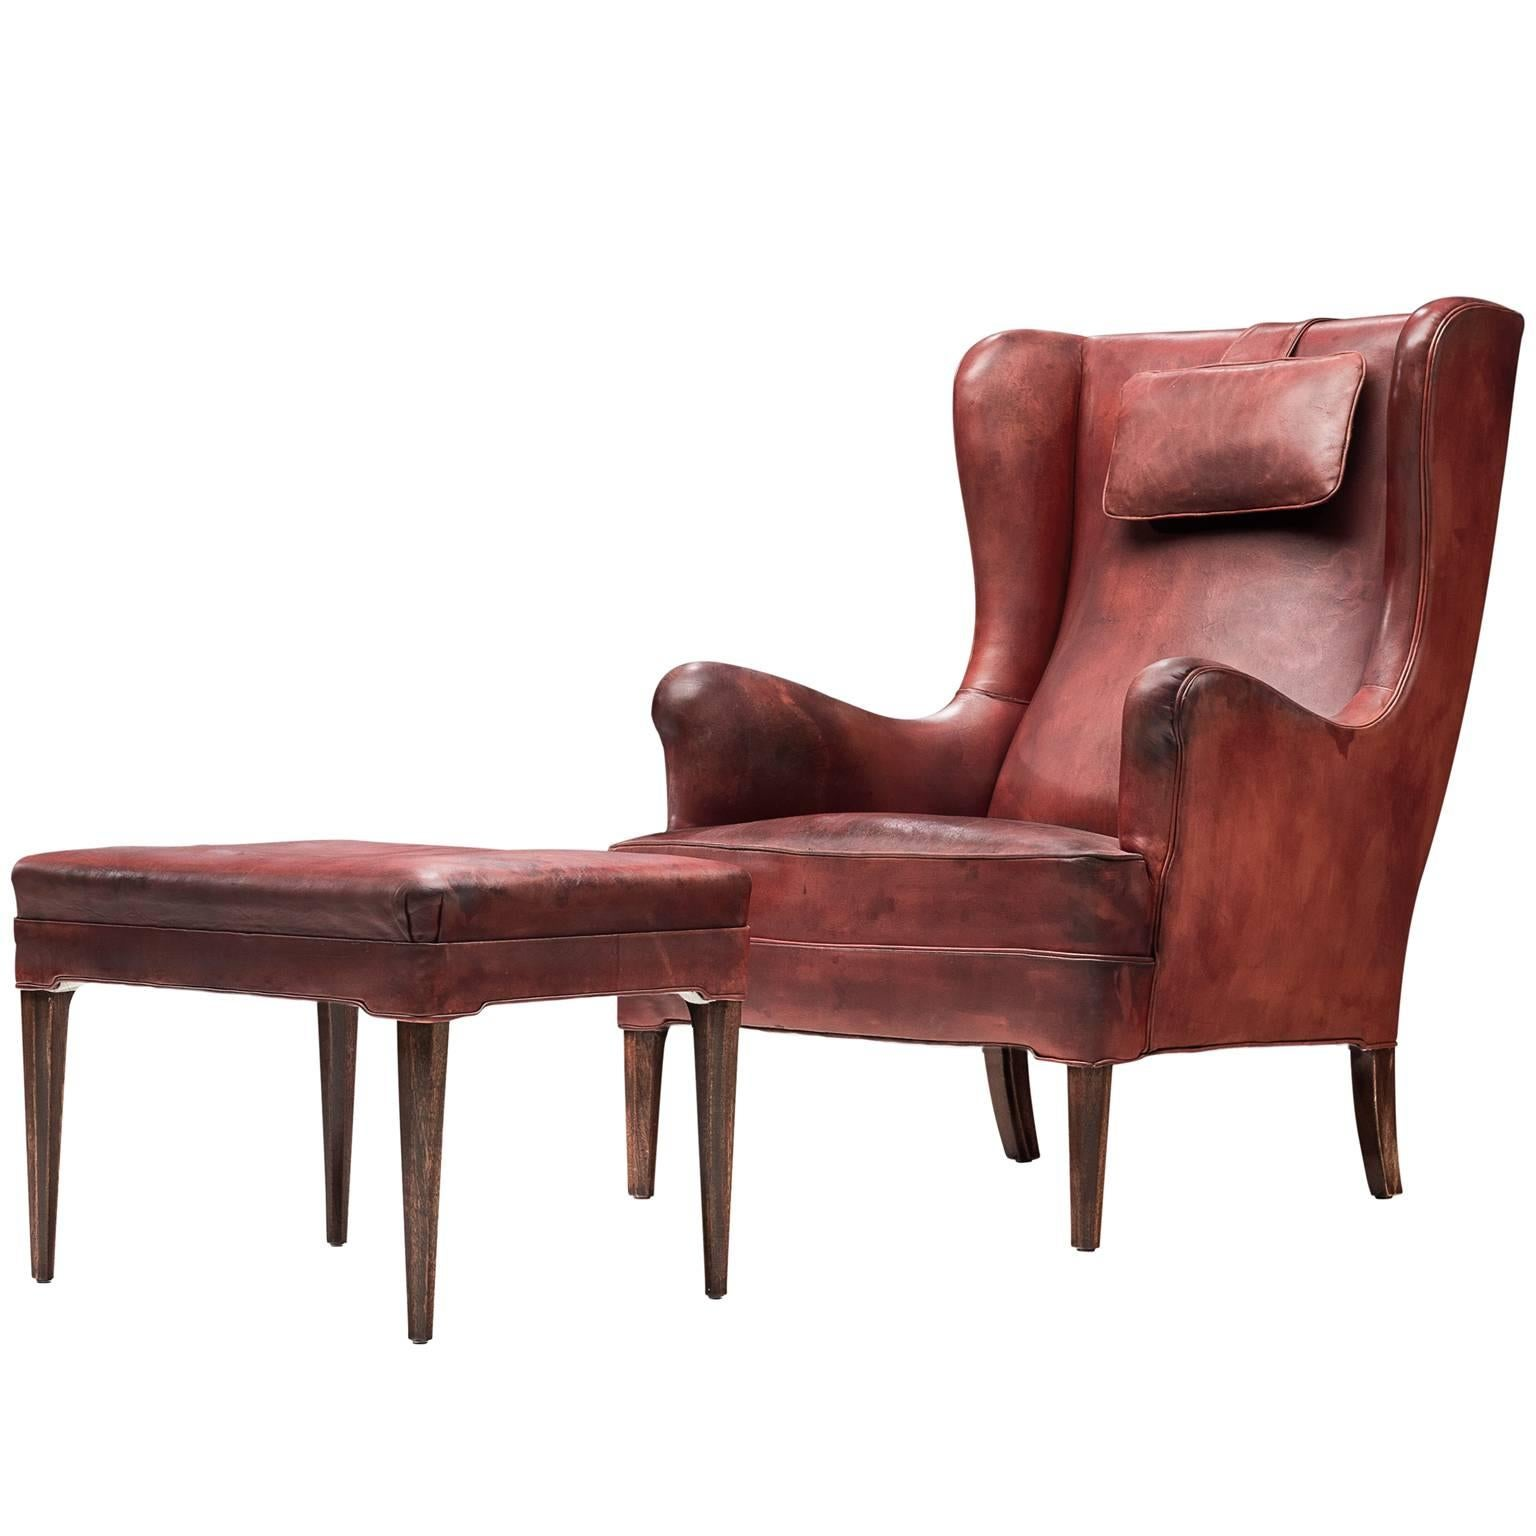 Awesome Fully Restored Frits Henningsen Lounge Chair In Original Leather For Sale